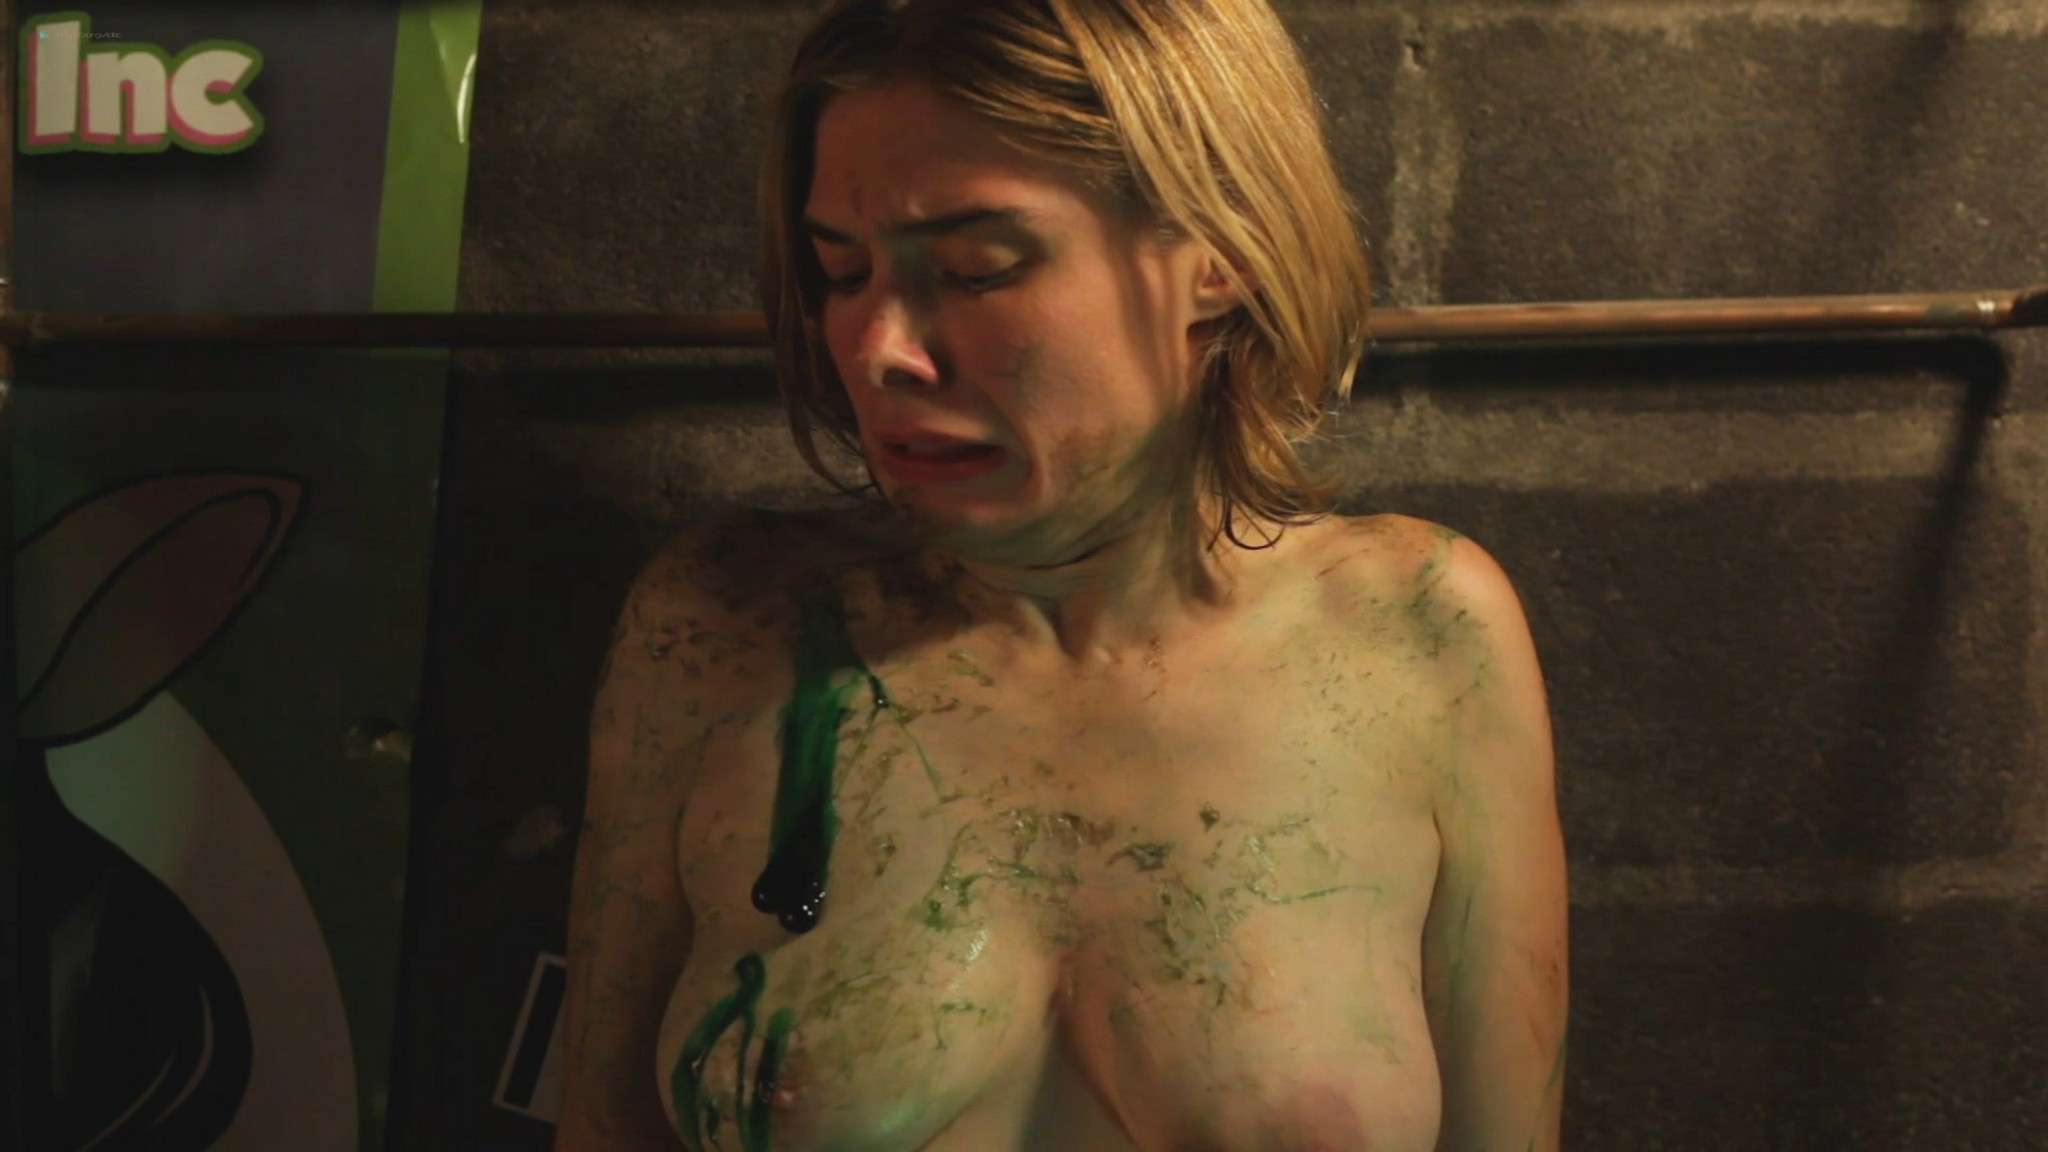 Asta Paredes nude sex Catherine Corcoran and others nude full frontal - Return to Return to Nuke 'Em High Aka Vol. 2 (2017) HD 1080p BluRay (2)